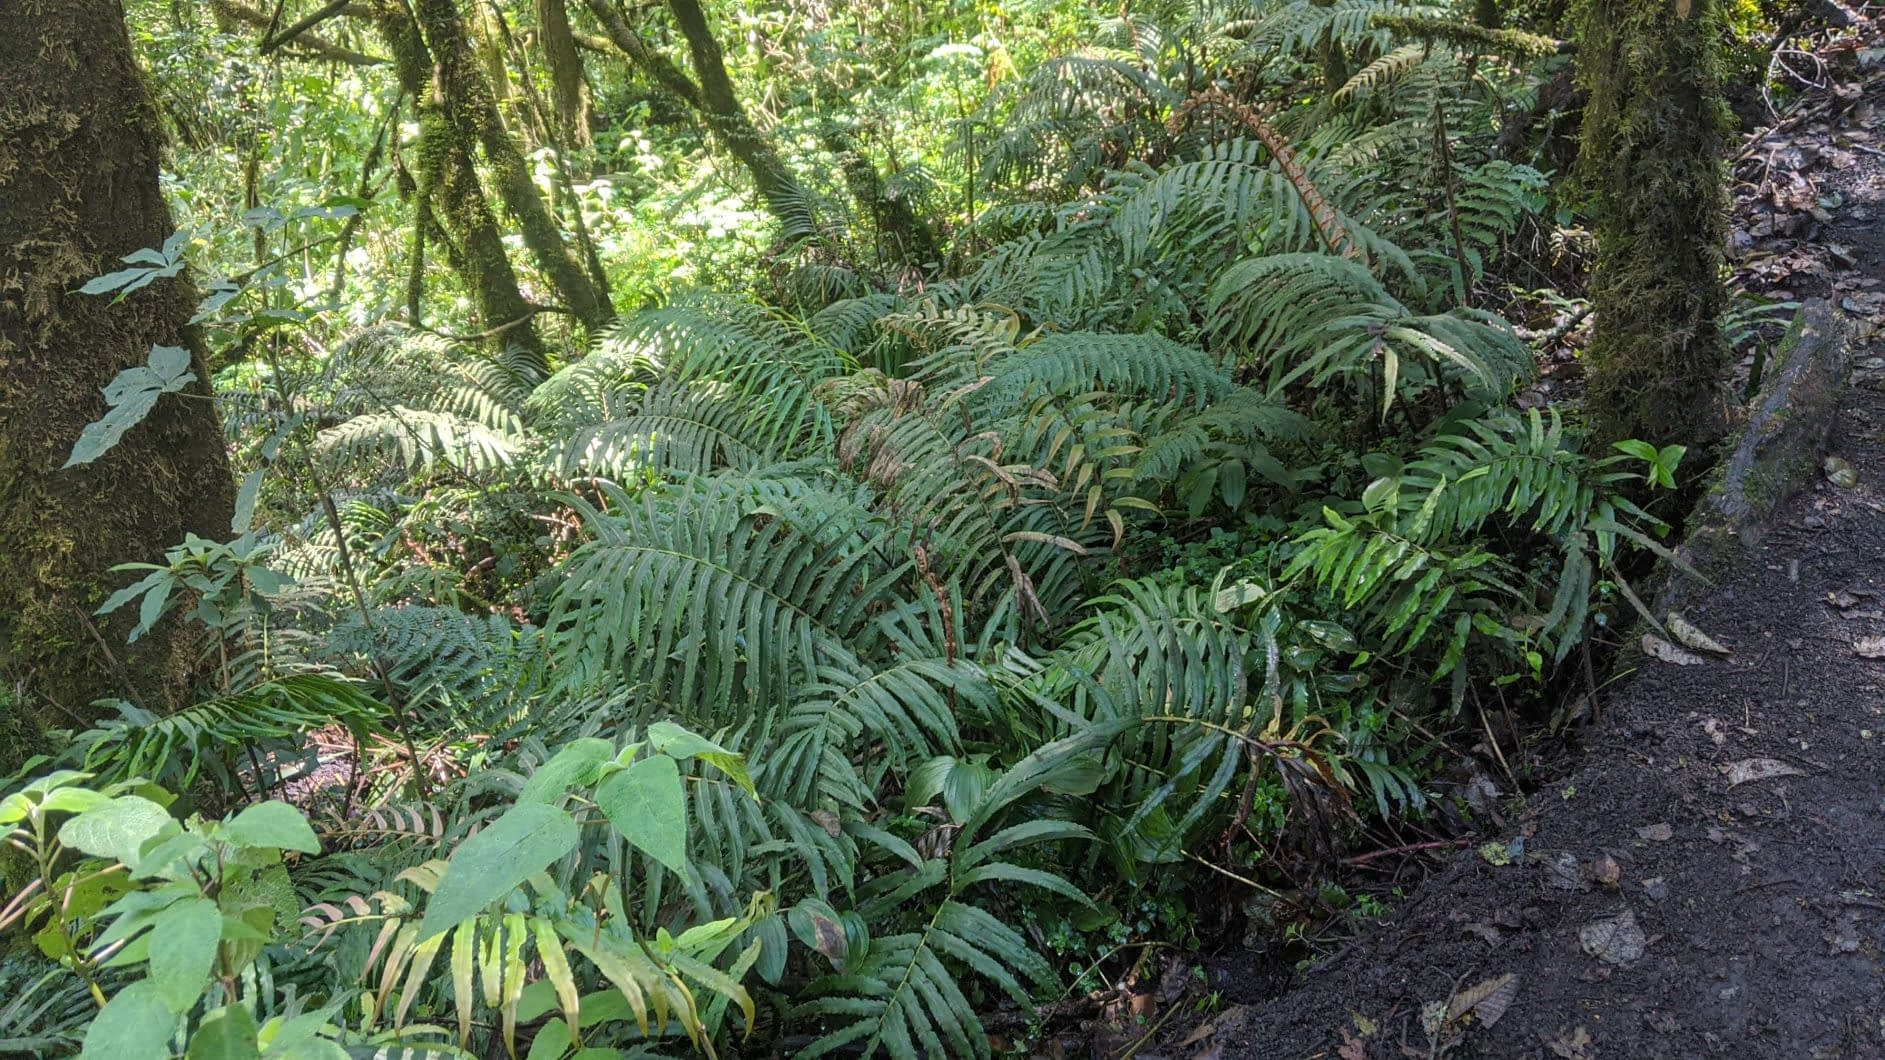 Fern forests of Acatenango Volcano